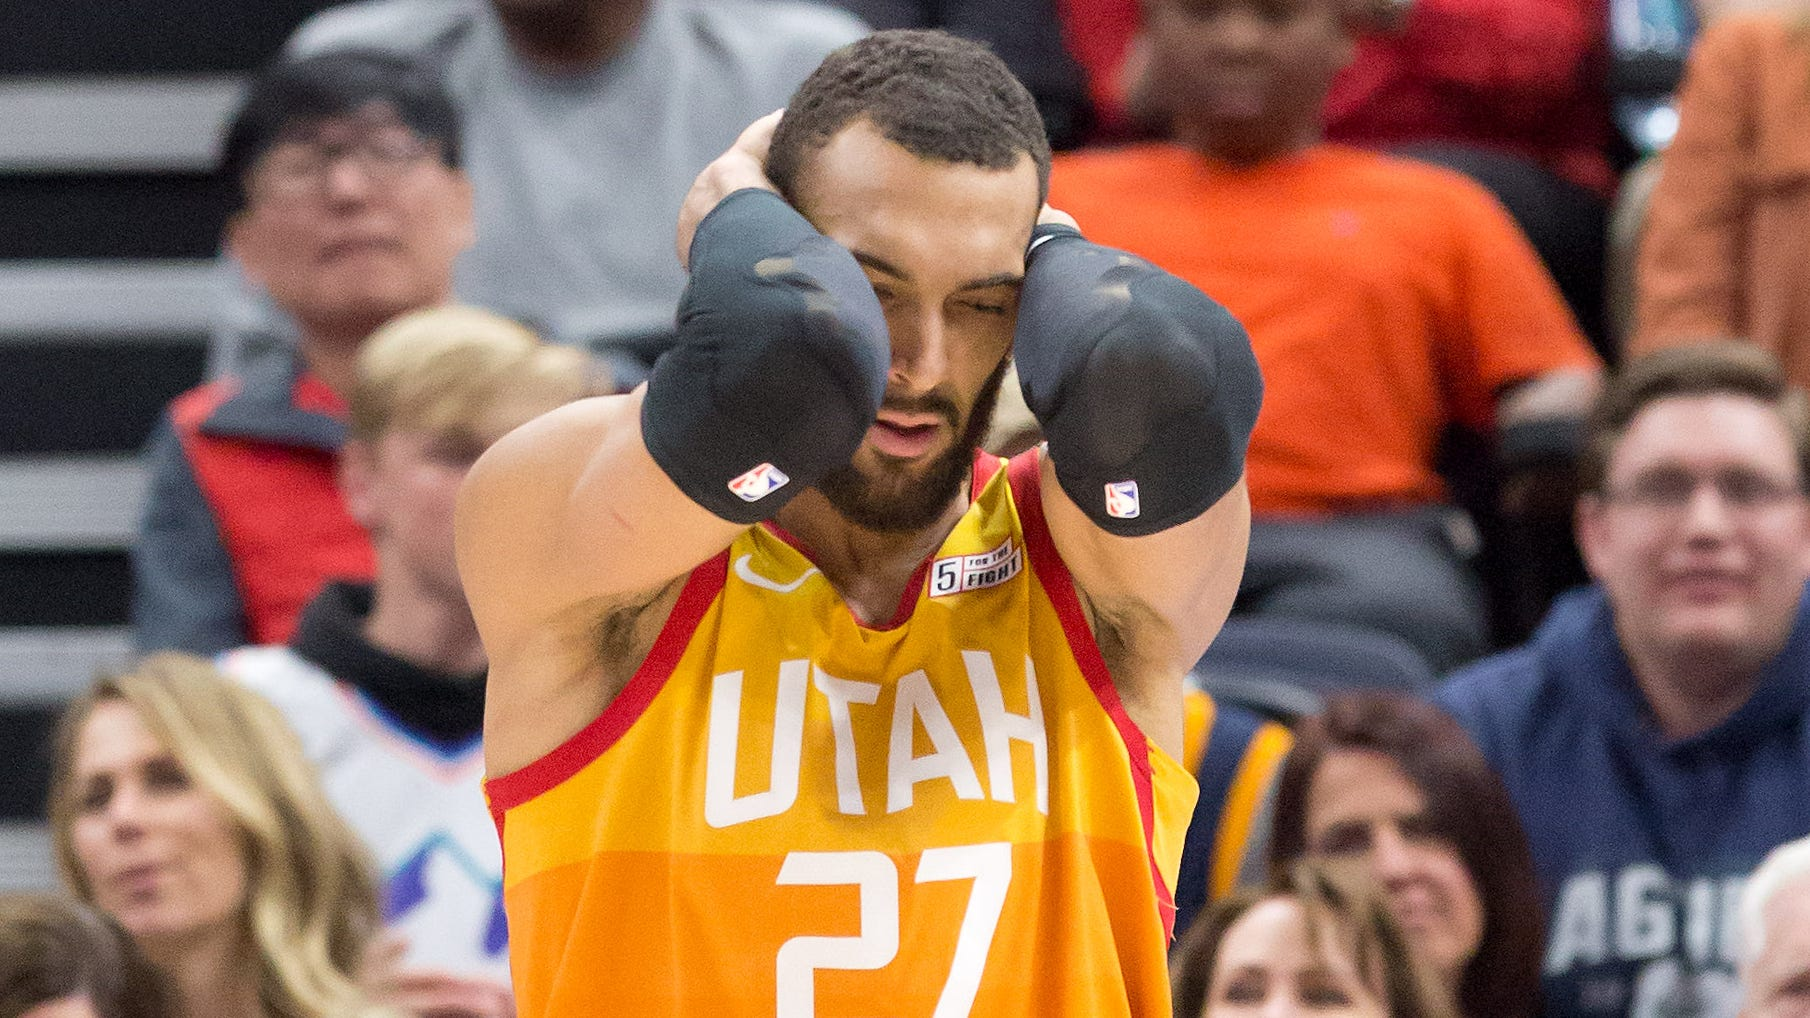 Utah Jazz centre Rudy Gobert was  one of the first sportspersons to test positive for Covid-19 last week. He apologised for his carelessness and advocated diligence in a video released on his accounts over the weekend.